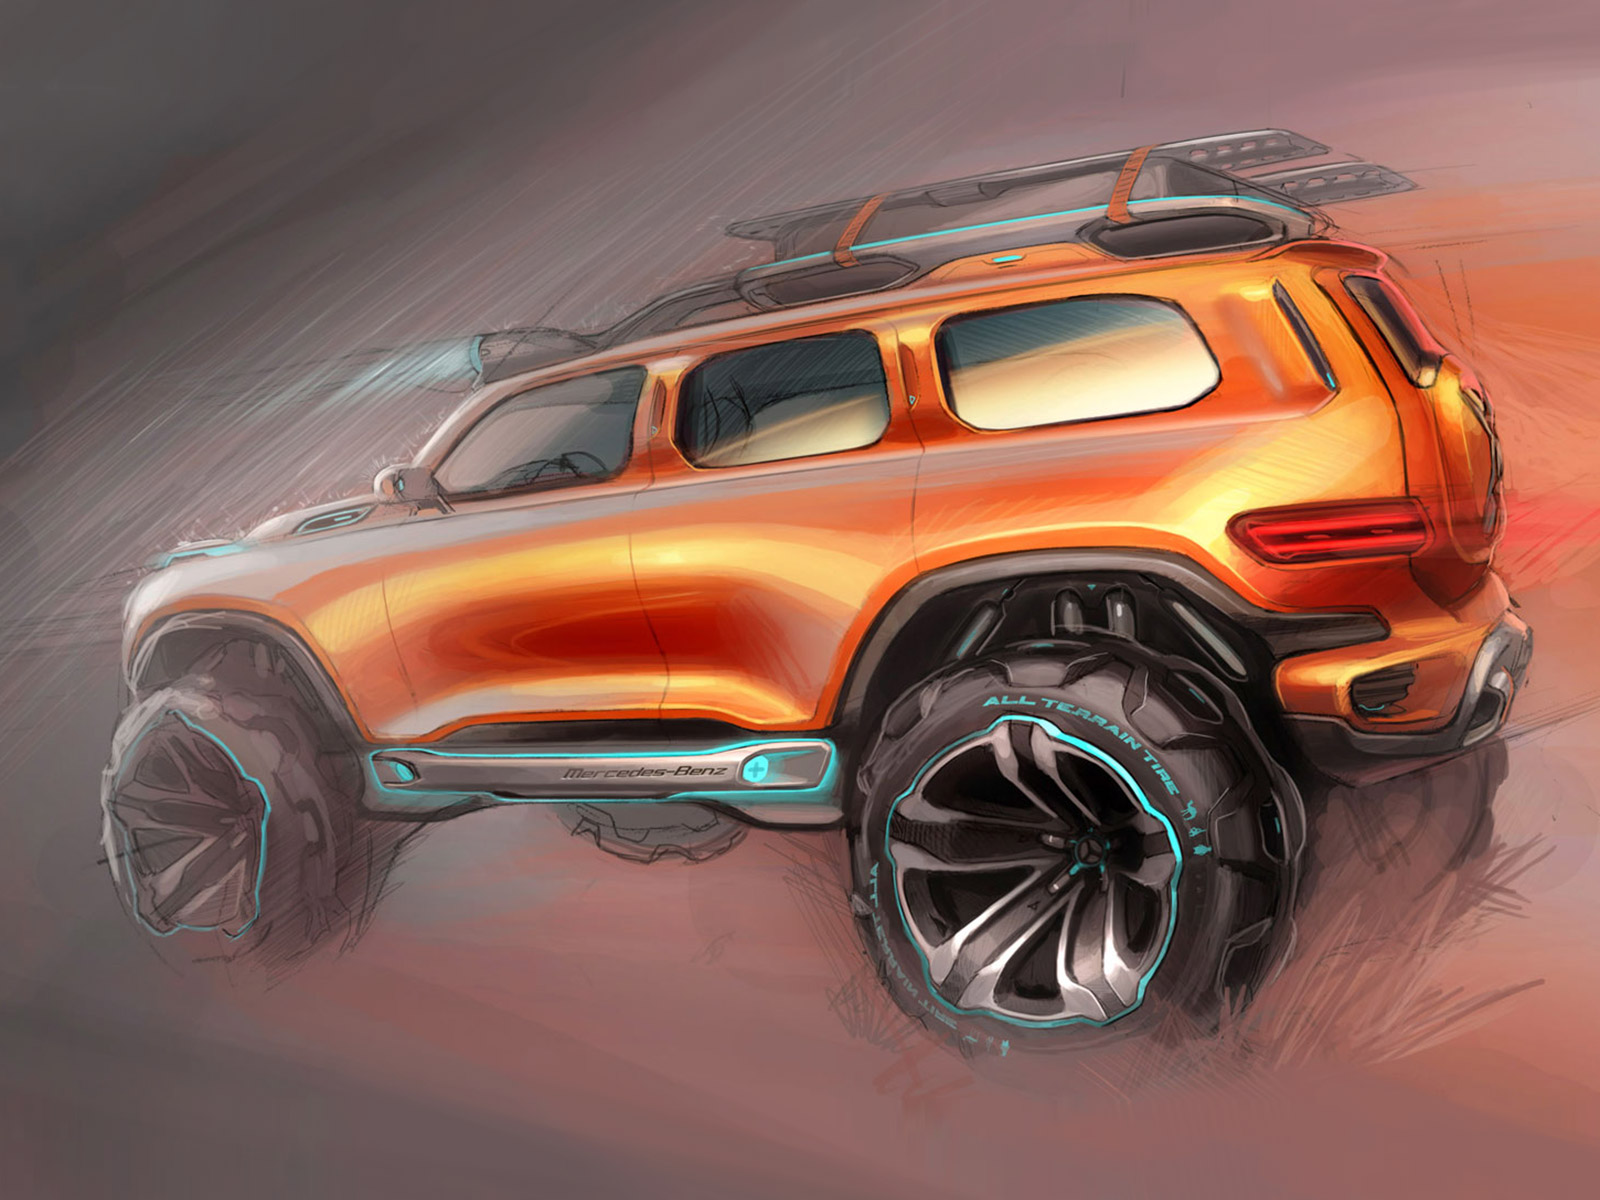 Mercedes benz ener g force concept design sketch car for Mercedes benz auto body